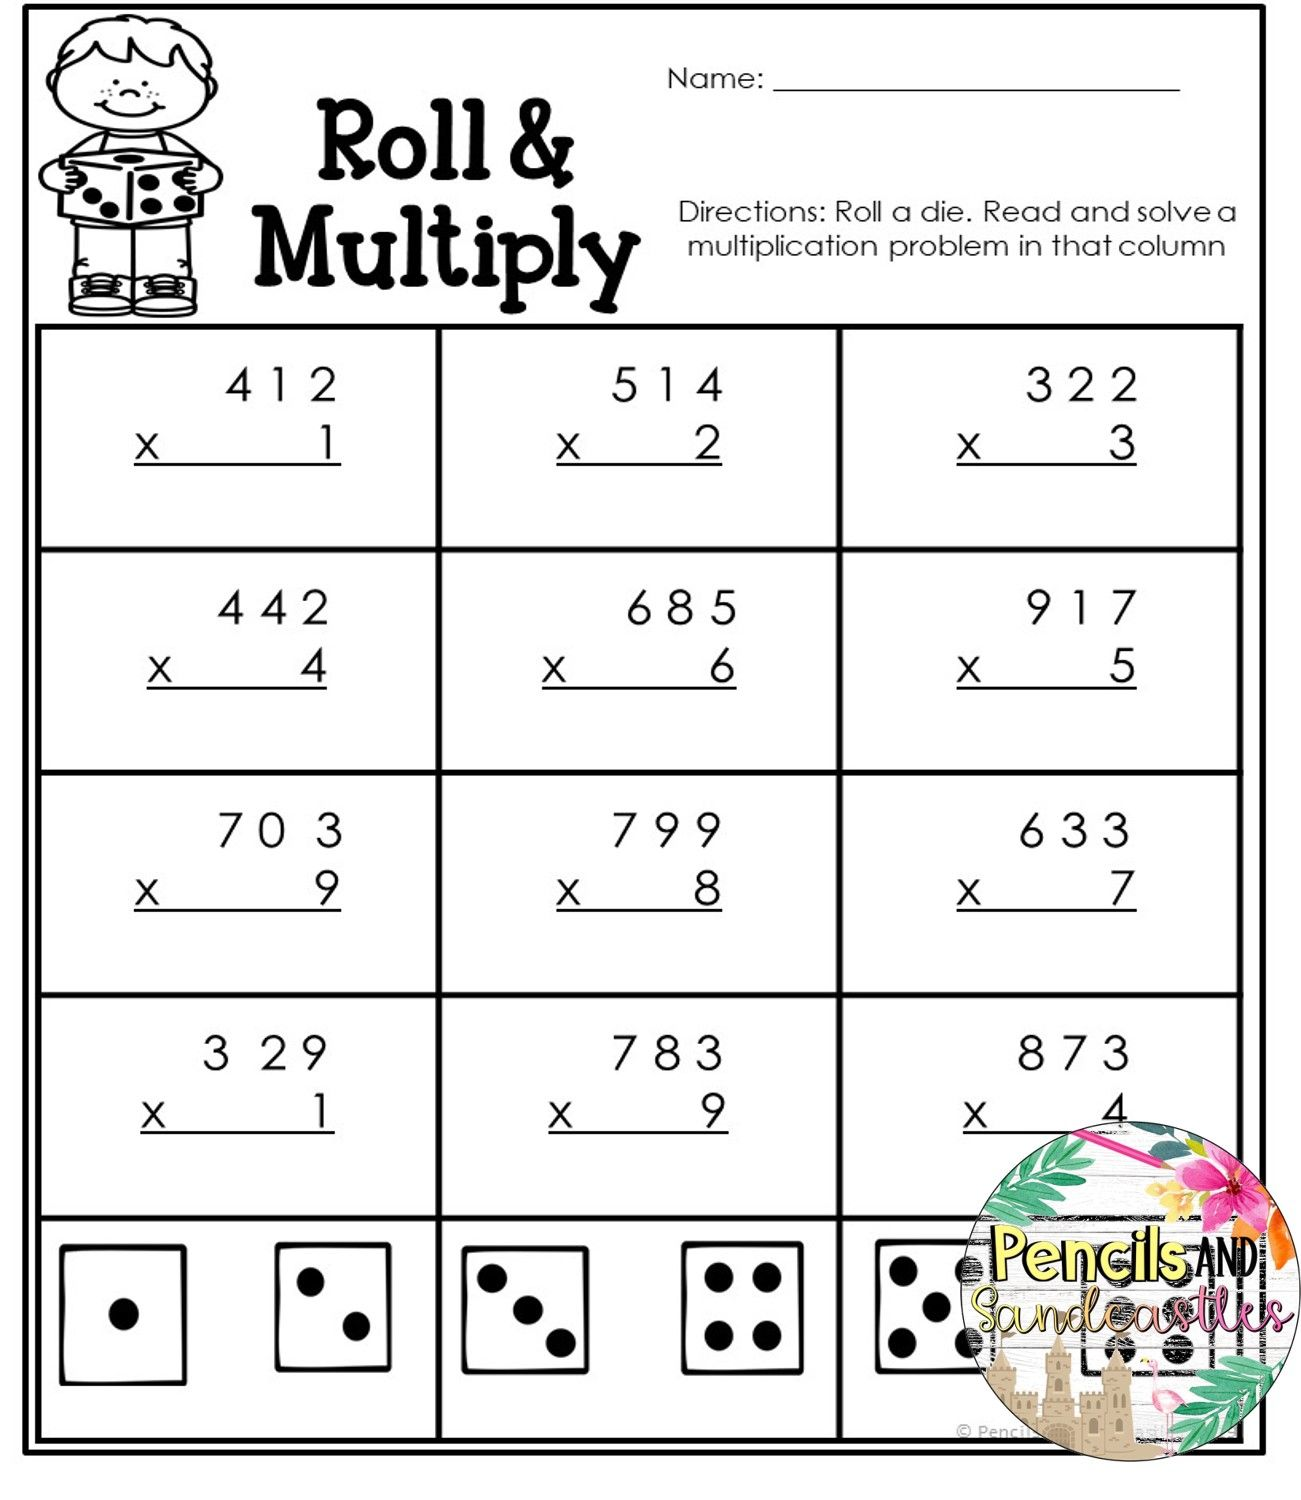 Spreadthelove Multiply 3 Digit By 1 Digit Worksheets